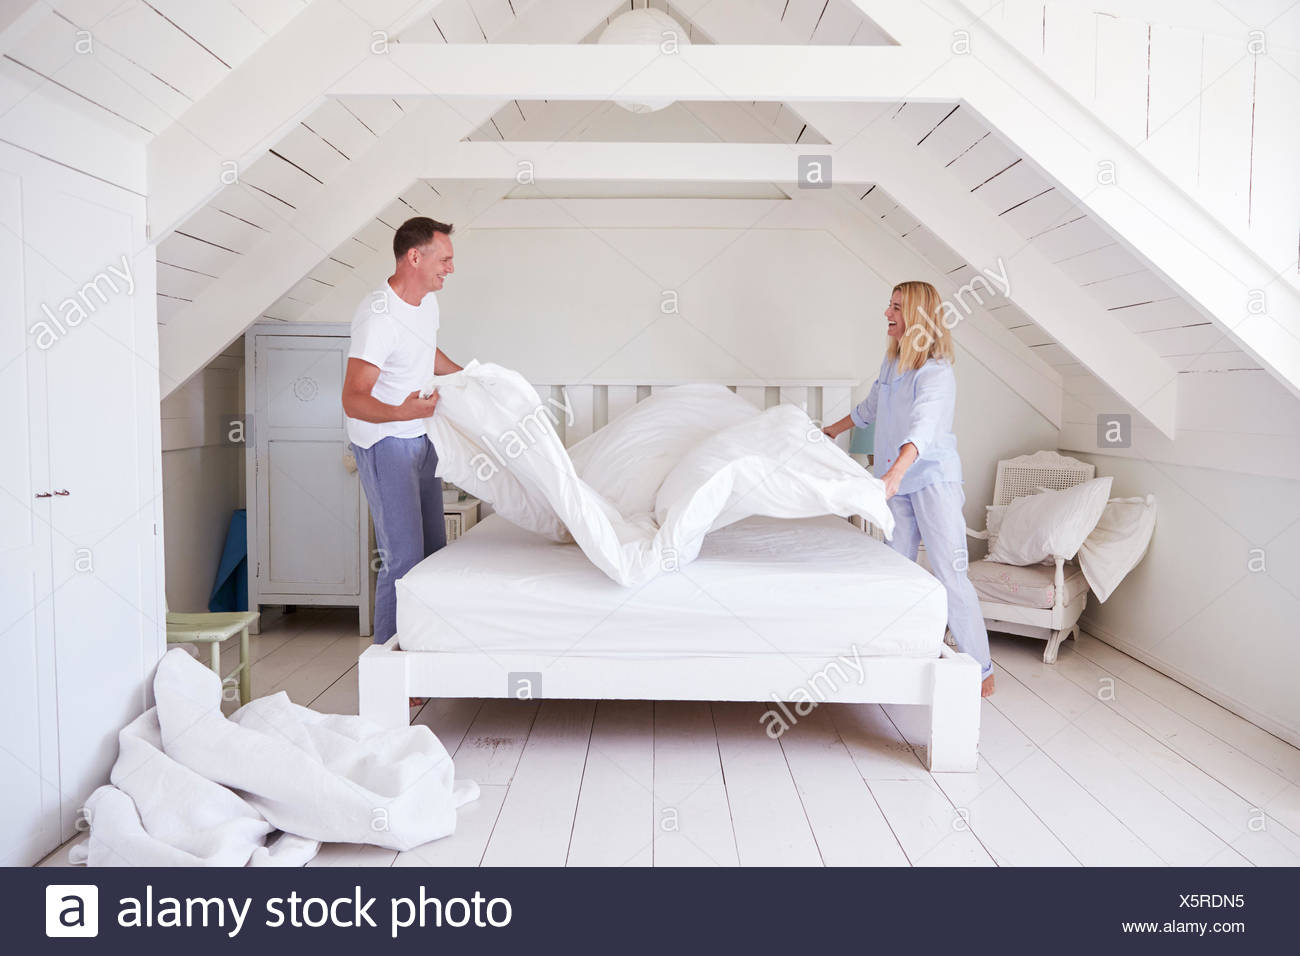 Couple Wearing Pajamas Making Bed In Morning - Stock Image